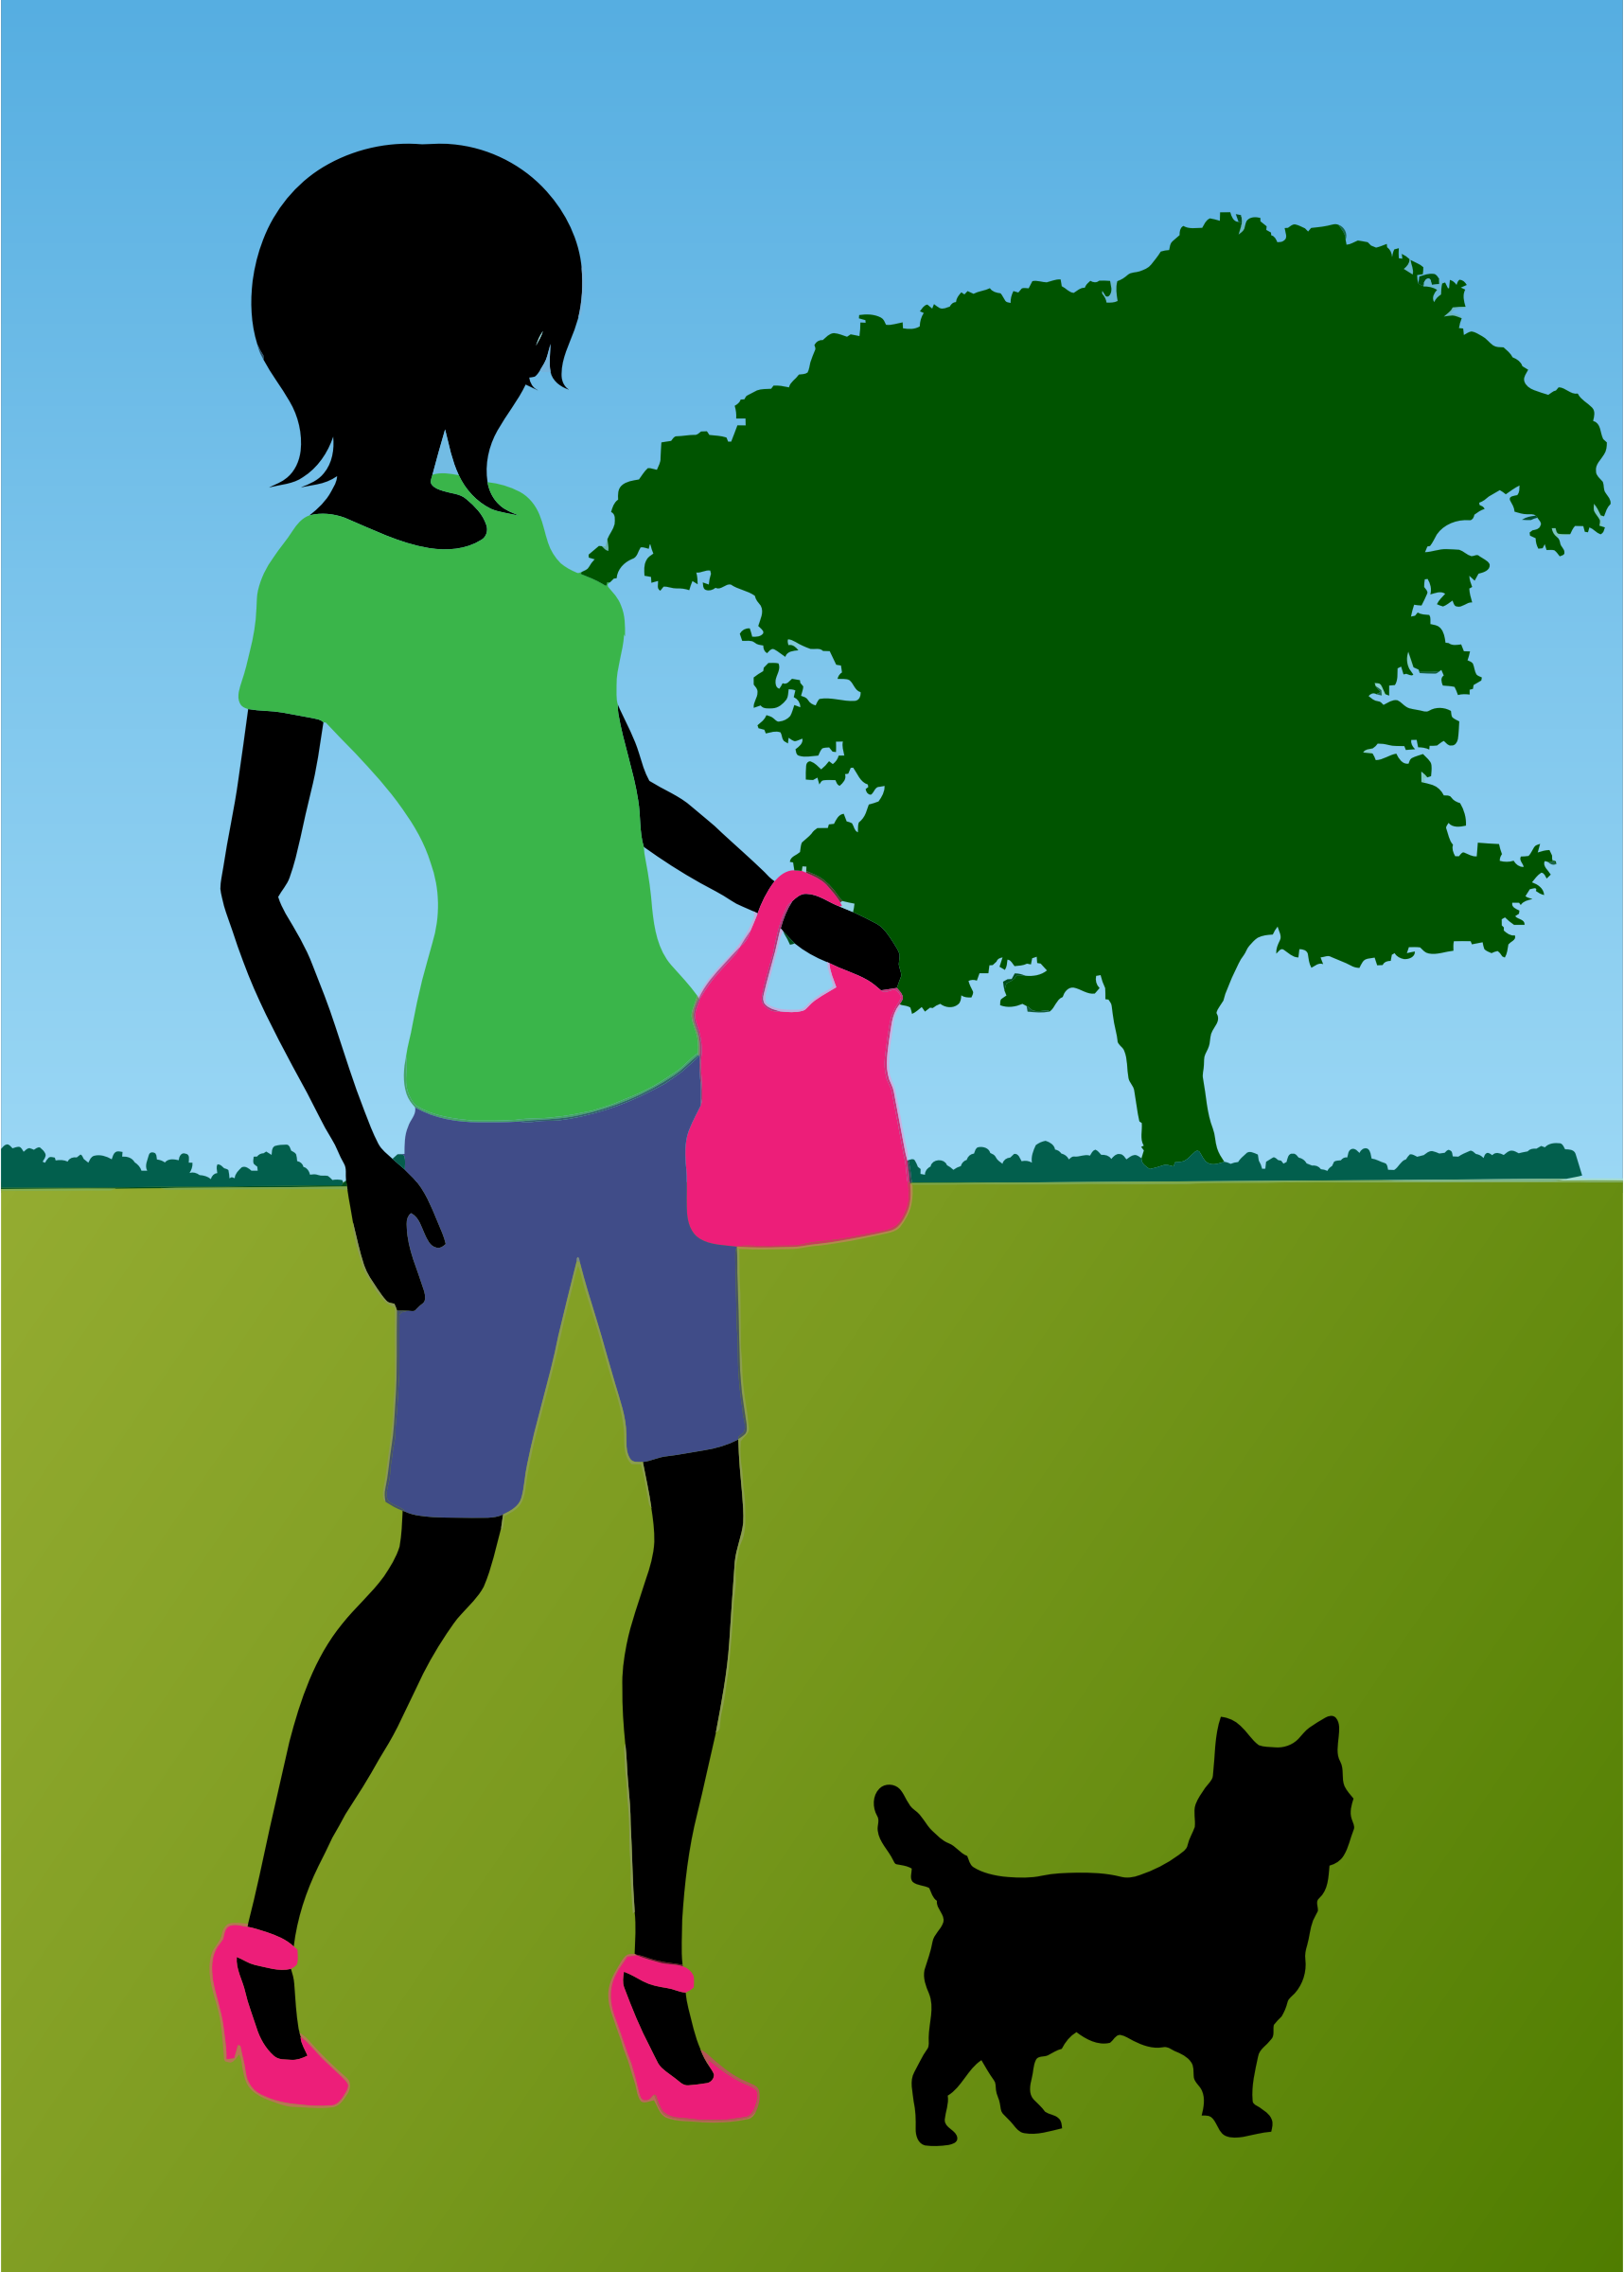 Woman Walking Dog In Park by GDJ